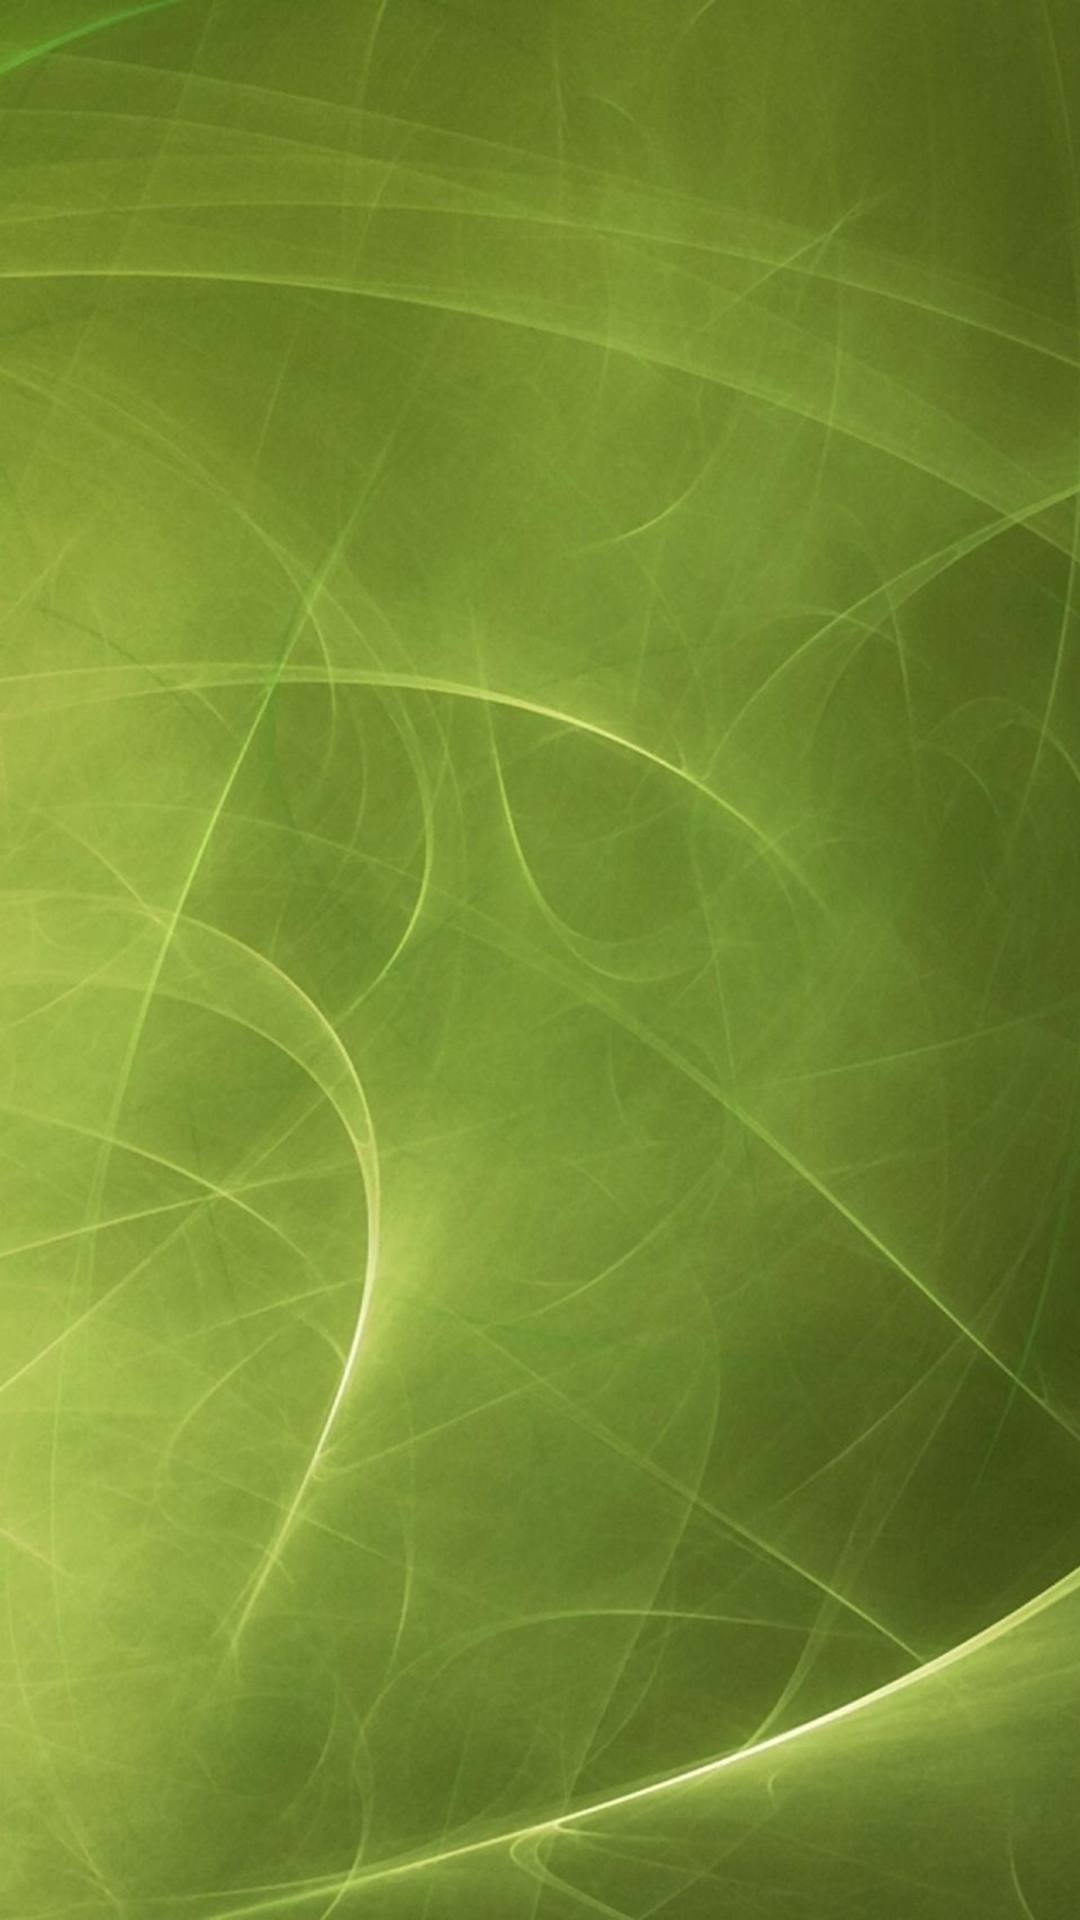 Green-Silk-Swirl-Background-iPhone-wallpaper-wallpaper-wp4806990